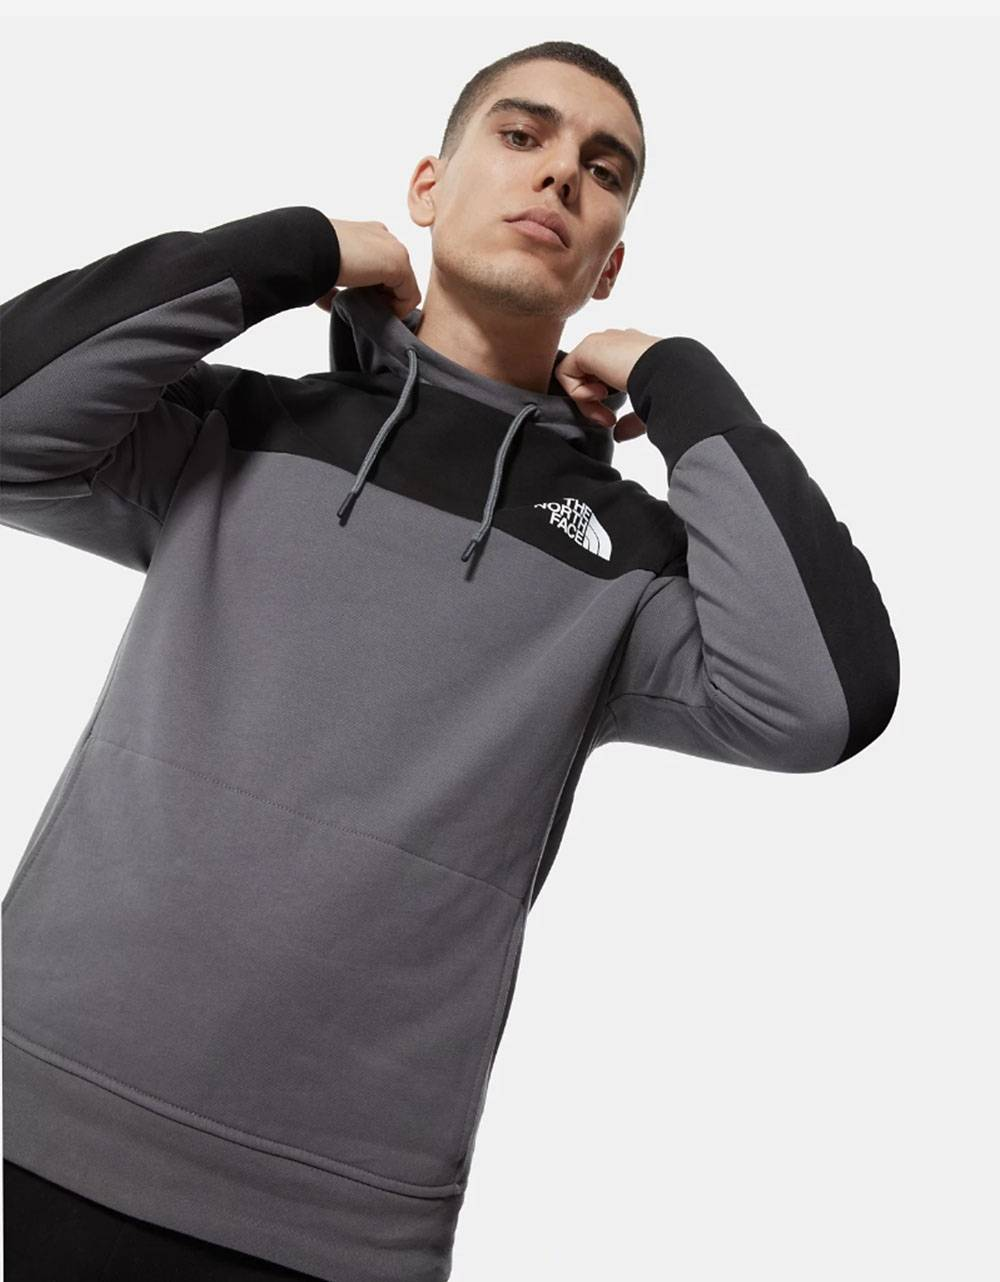 The North Face Himalayan hoodie - vanadis grey/black THE NORTH FACE Sweater 110,00 €